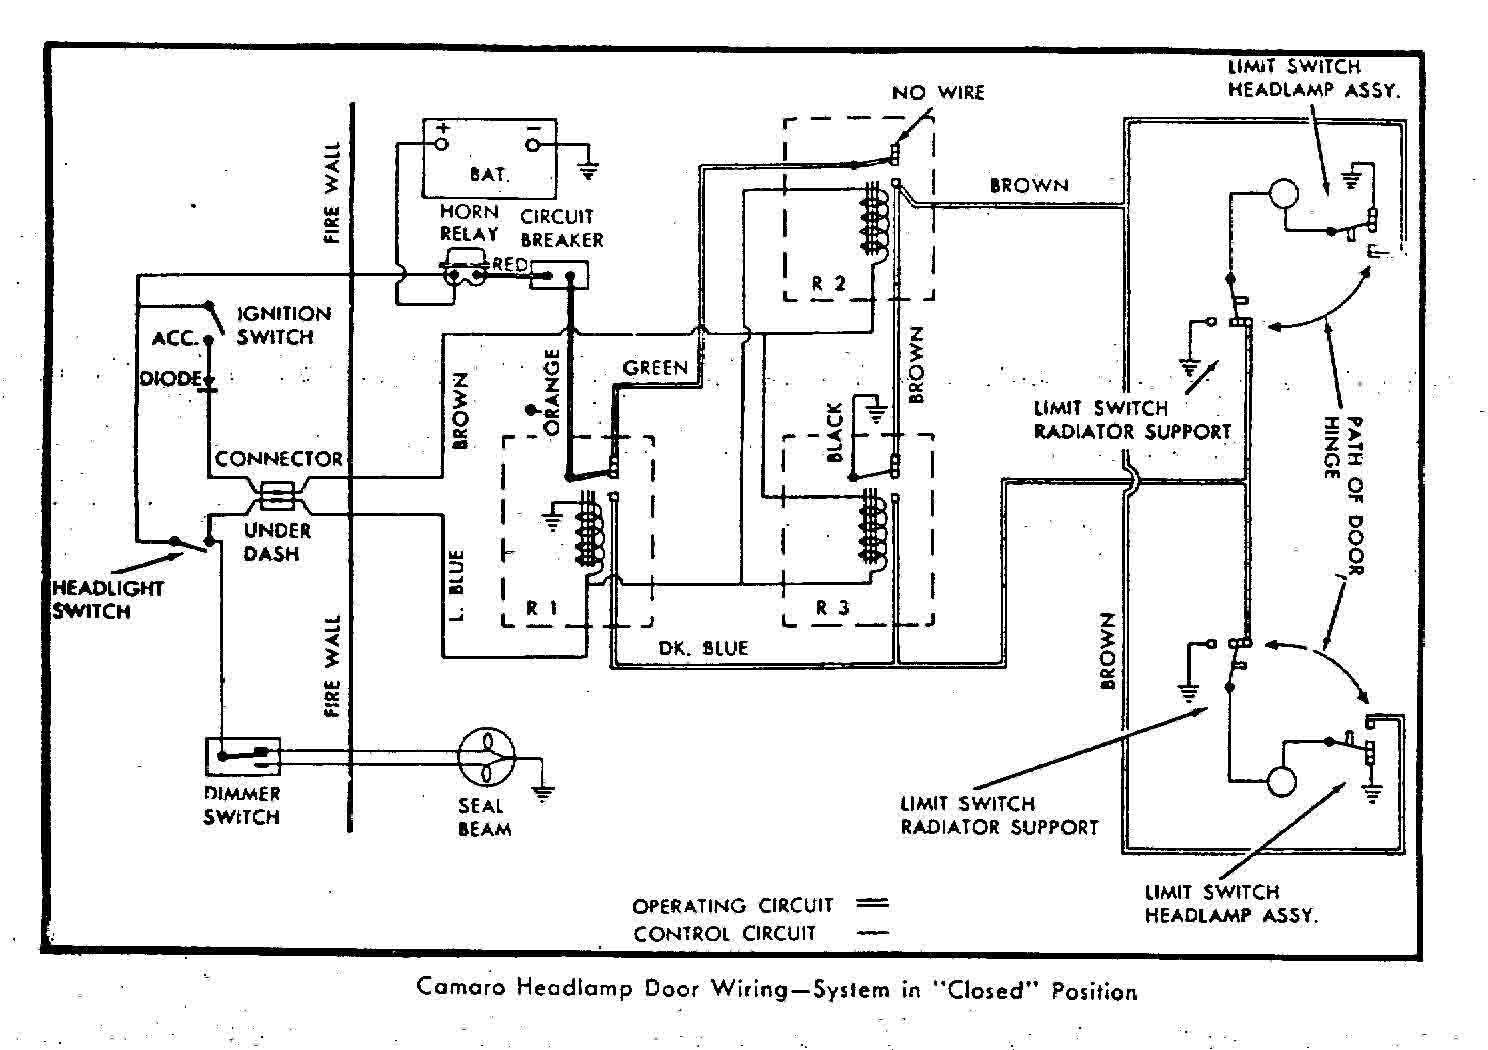 hight resolution of 1967 camaro fuse box schematic data wiring diagram 1967 camaro fuse box diagram